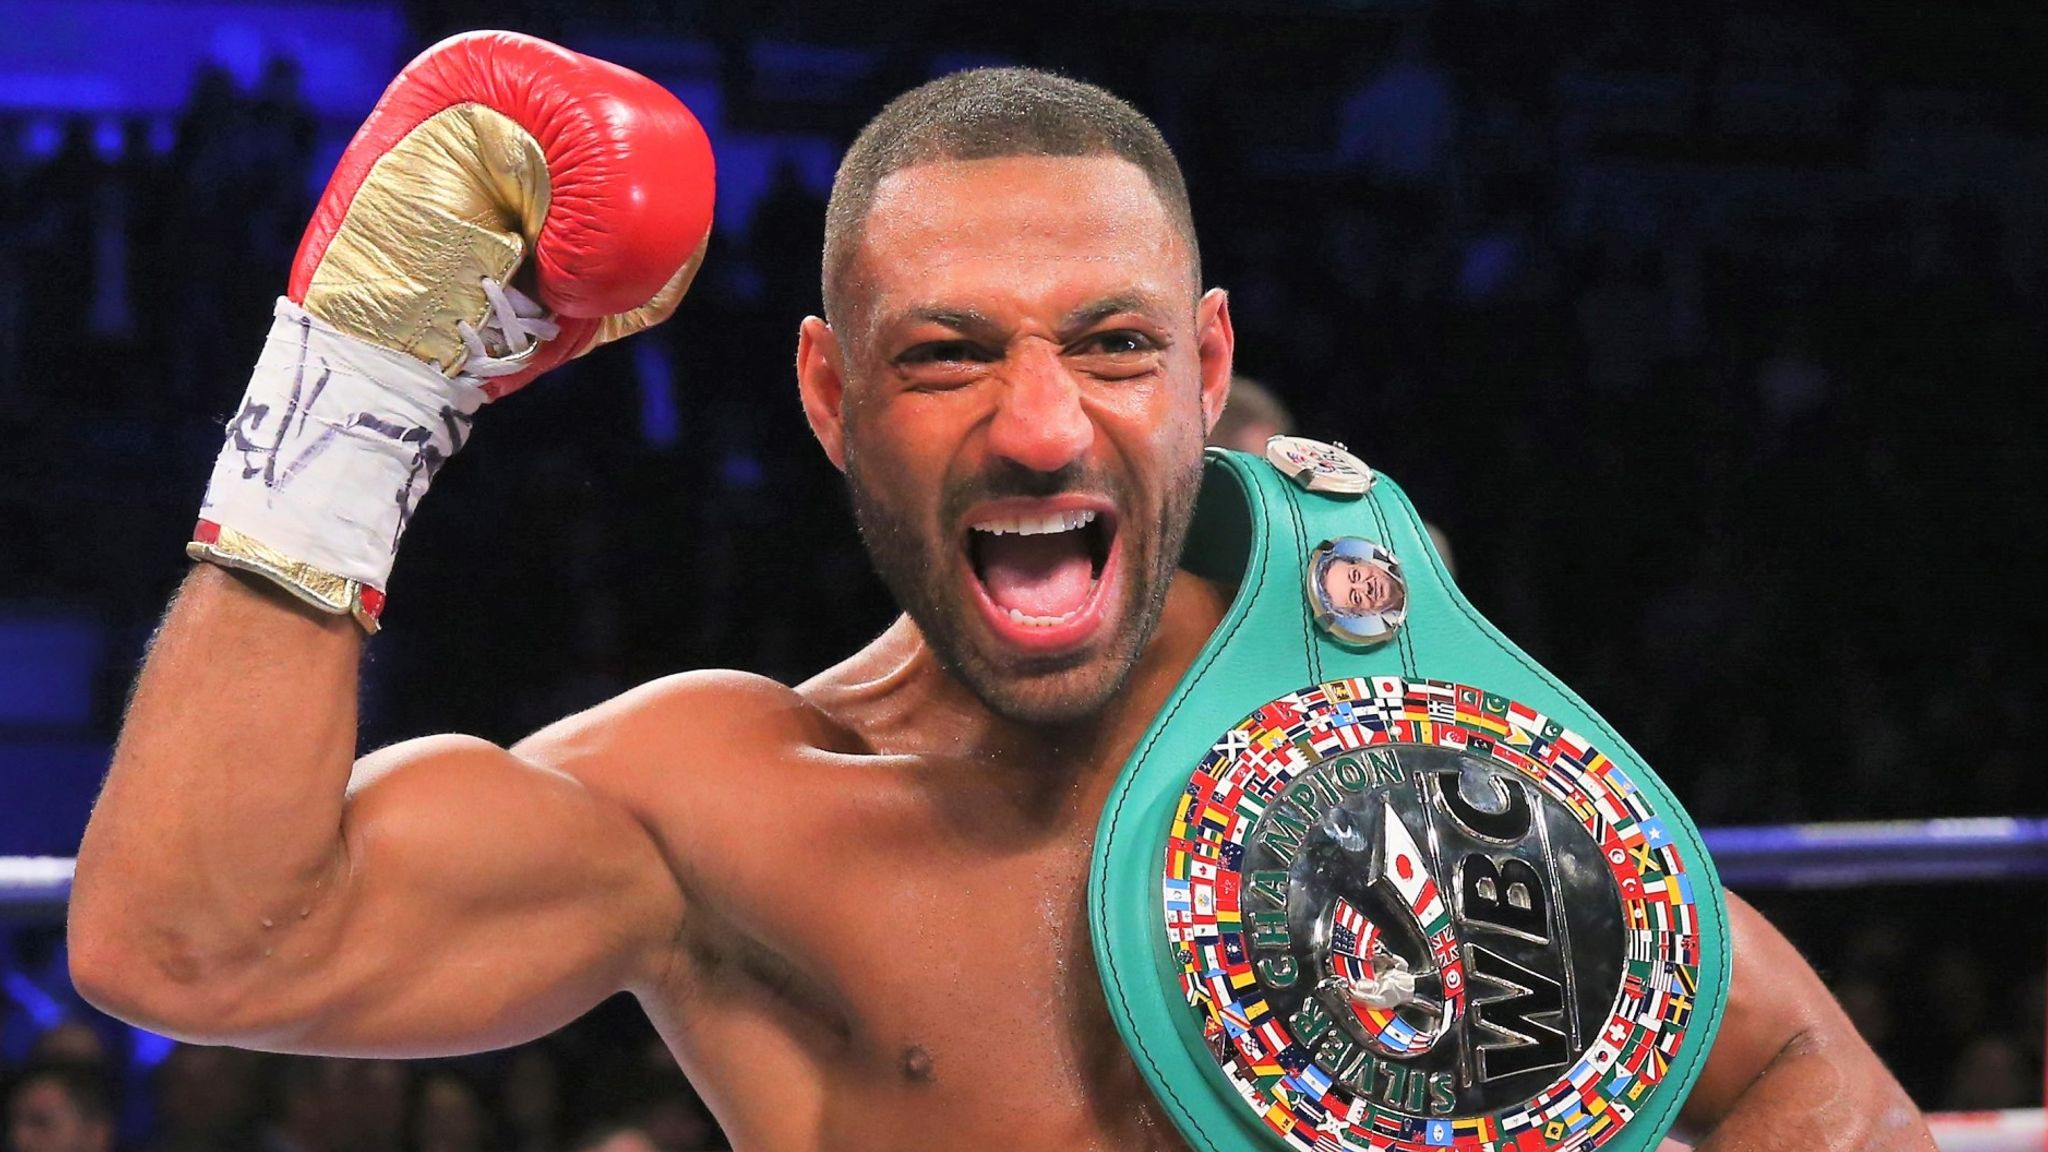 Dillian Whyte, Callum Smith and Kell Brook have big ambitions to fulfil in 2020, says Tony Bellew